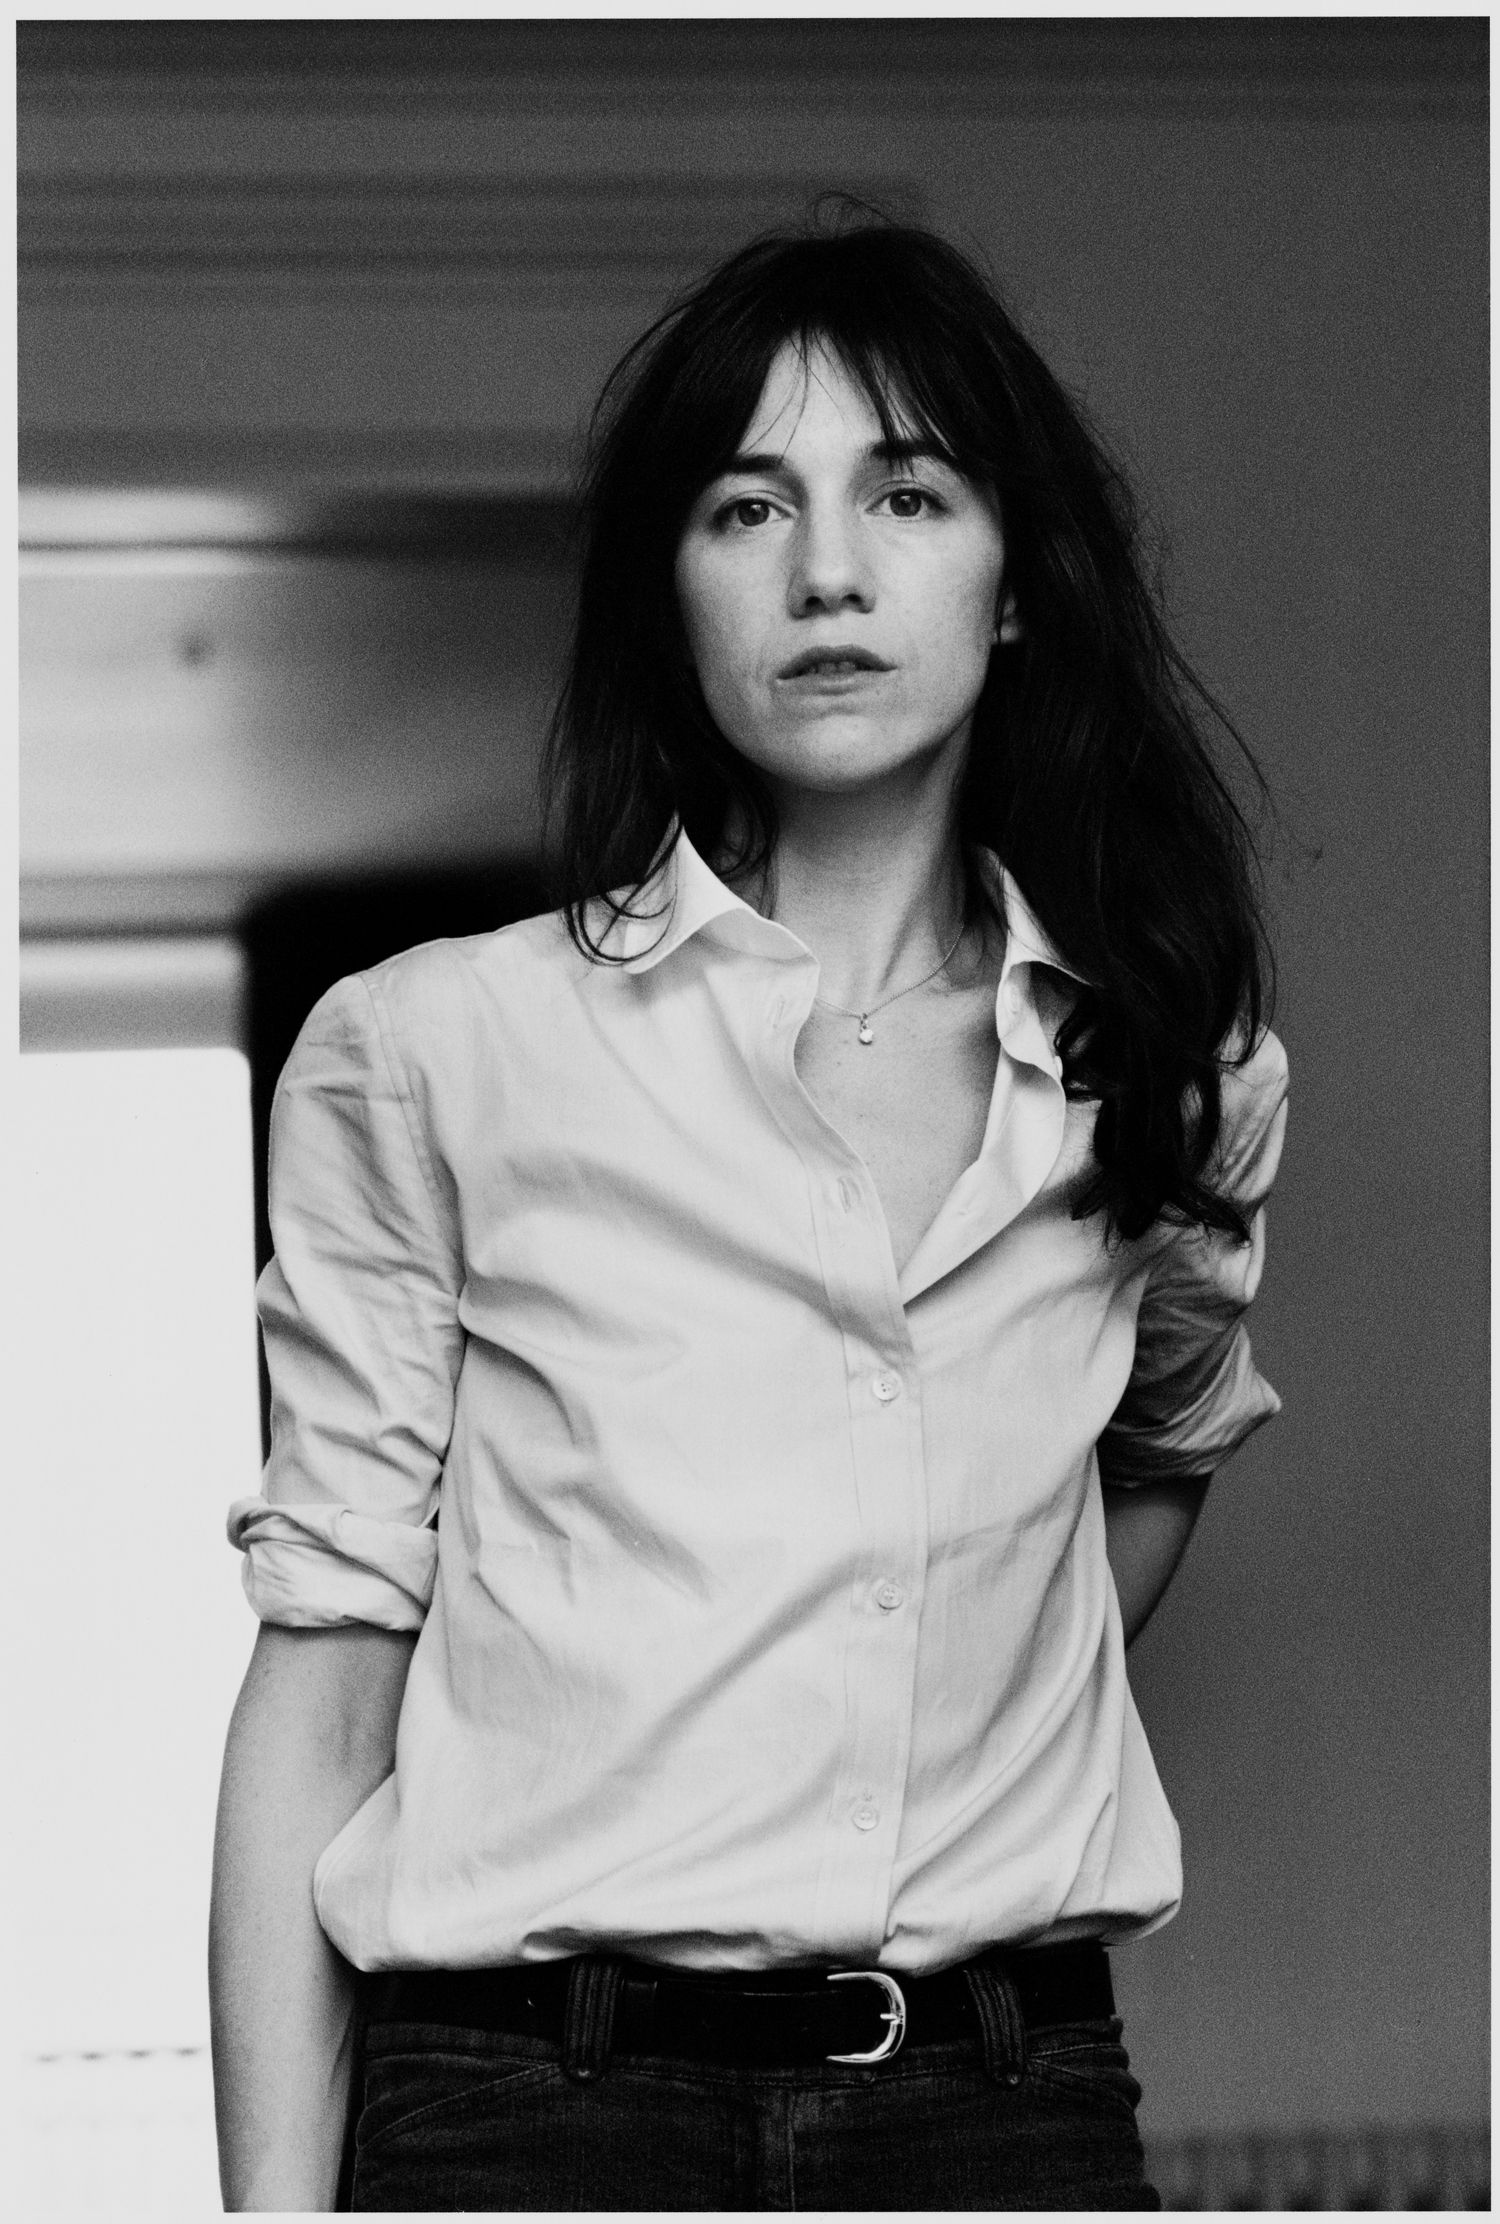 picture Charlotte Gainsbourg (born 1971)